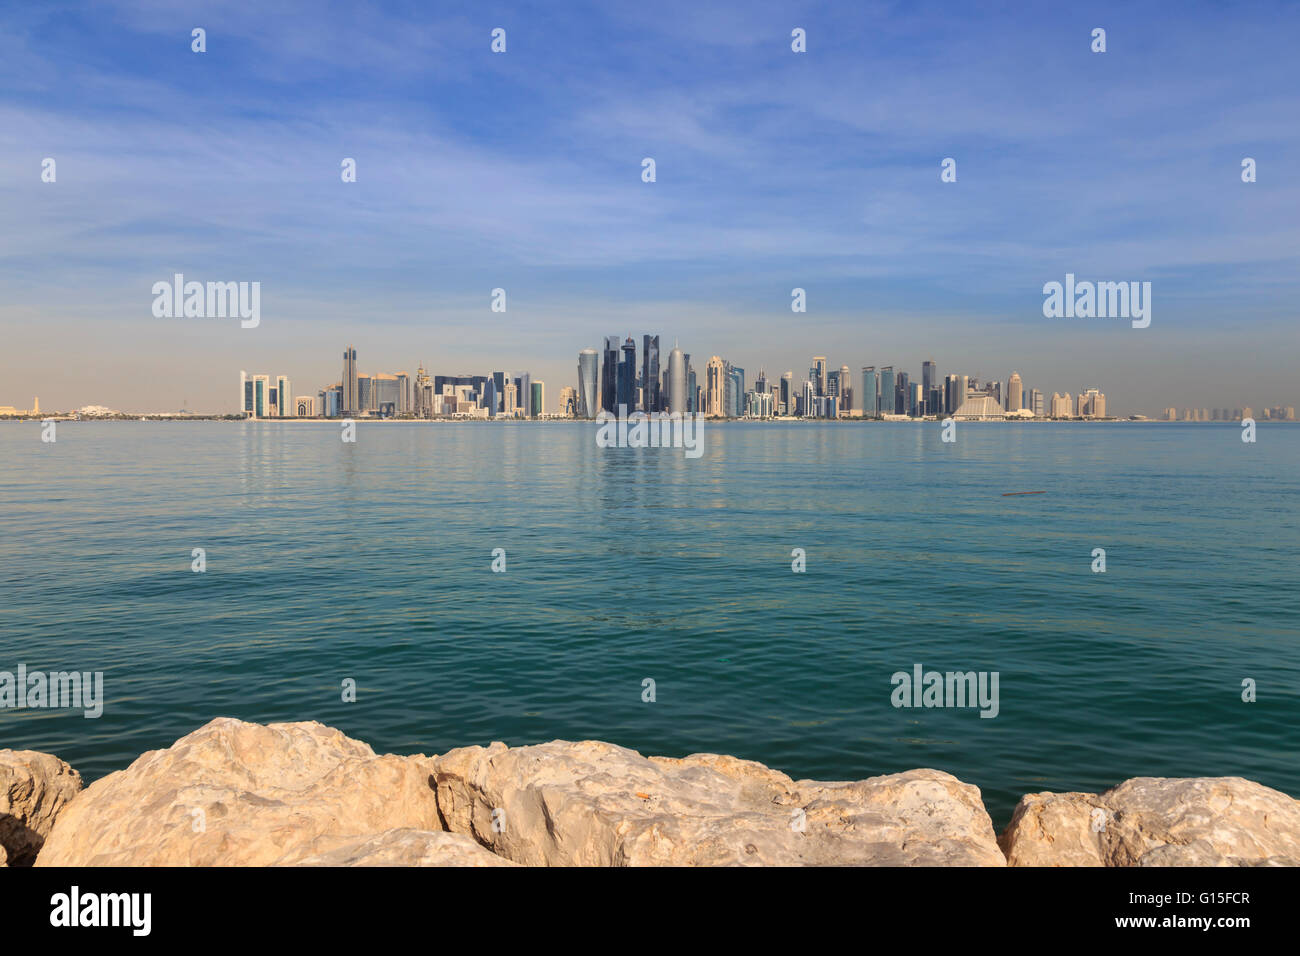 Modern city skyline of West Bay, across the calm turquoise waters of Doha Bay, from the Dhow Harbour, Doha, Qatar, - Stock Image